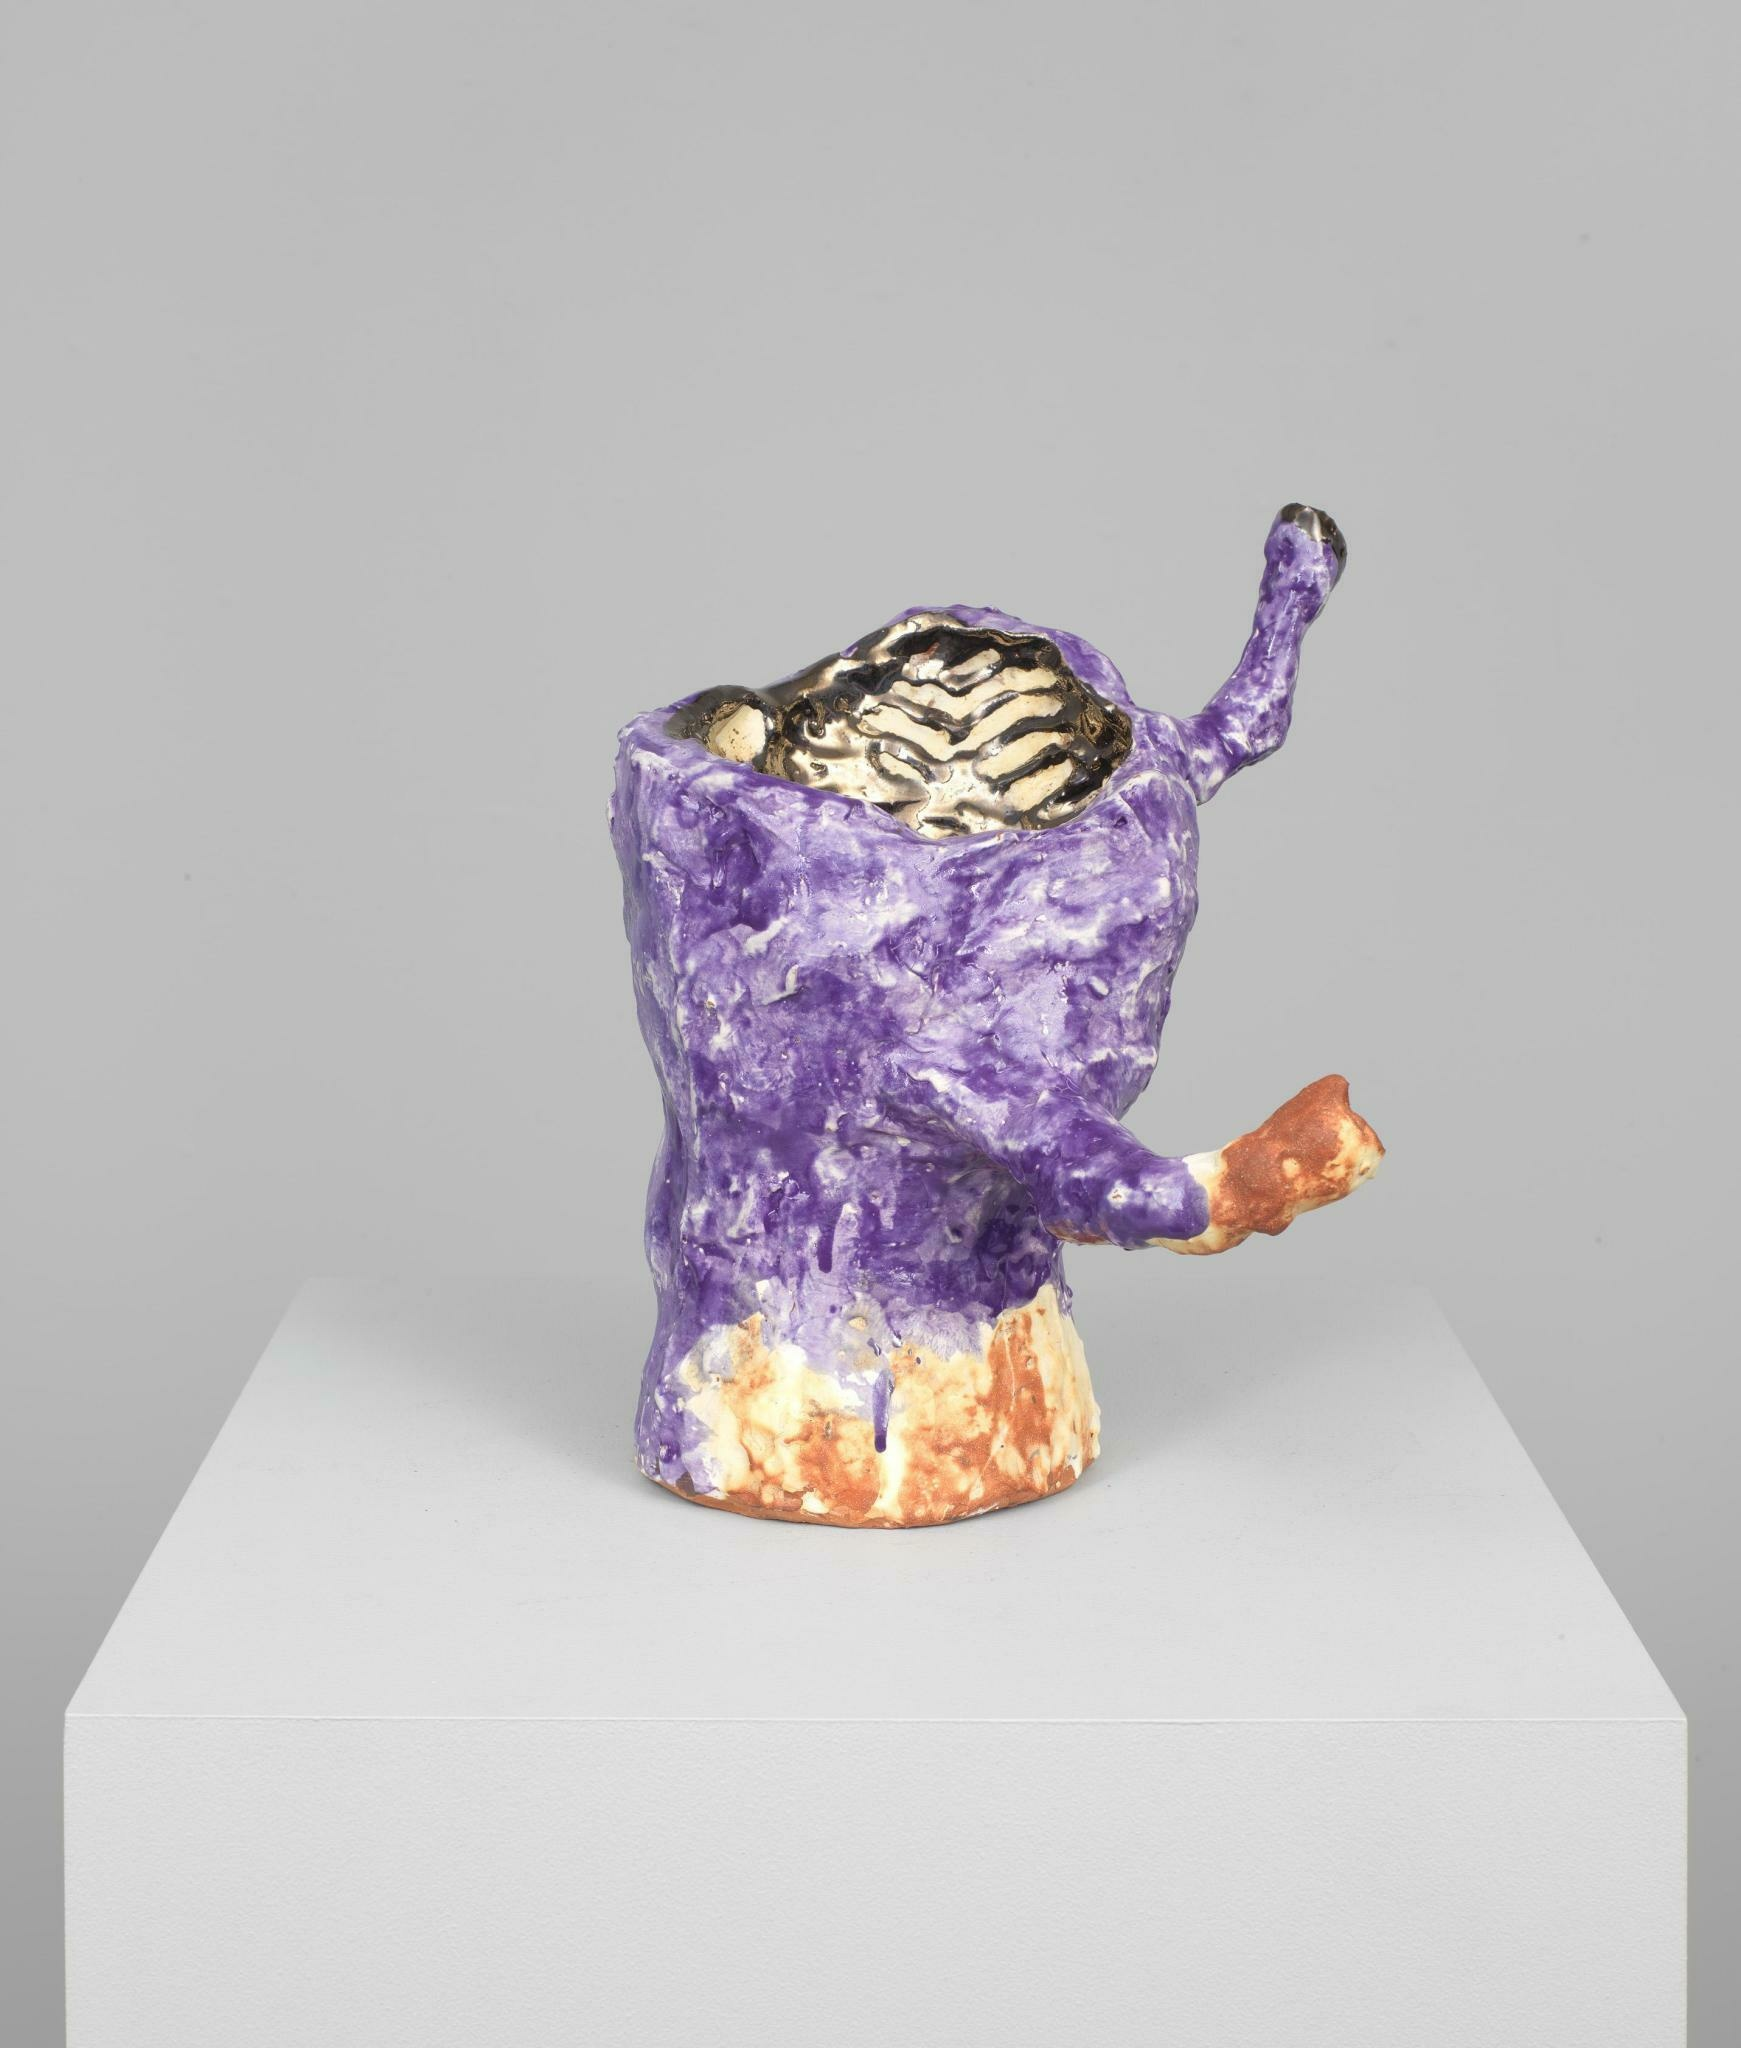 Corporeal red clay sculpture in a roughly finished purple glaze and metallic gold interior with two skinny protruding armatures